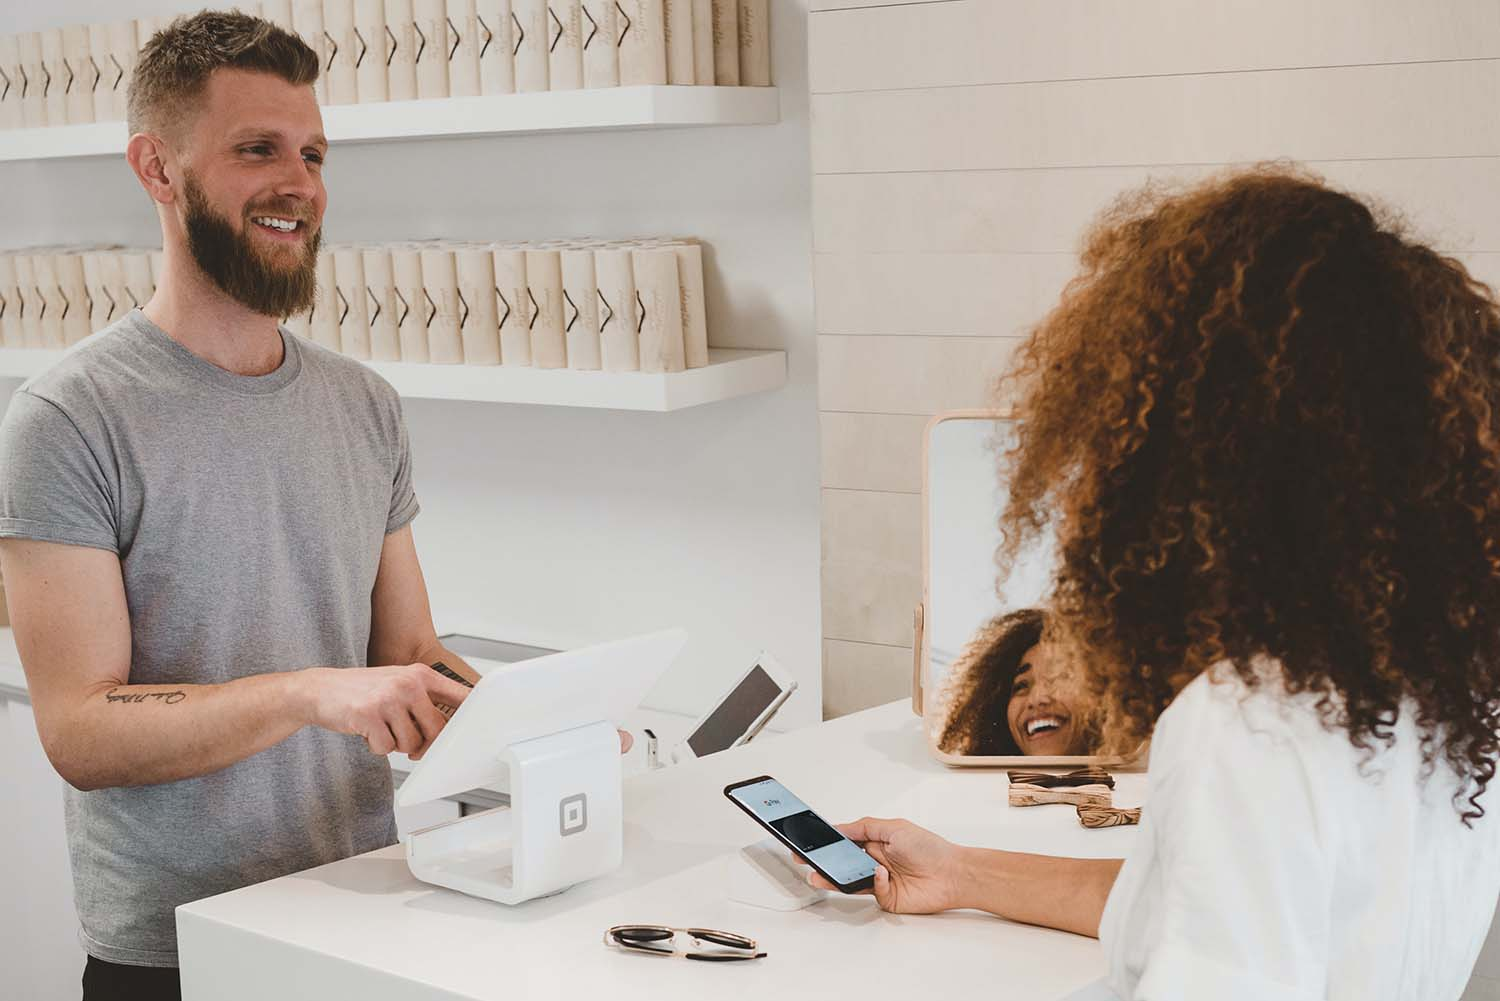 What Does It Take To Truly Build Brand Loyalty?